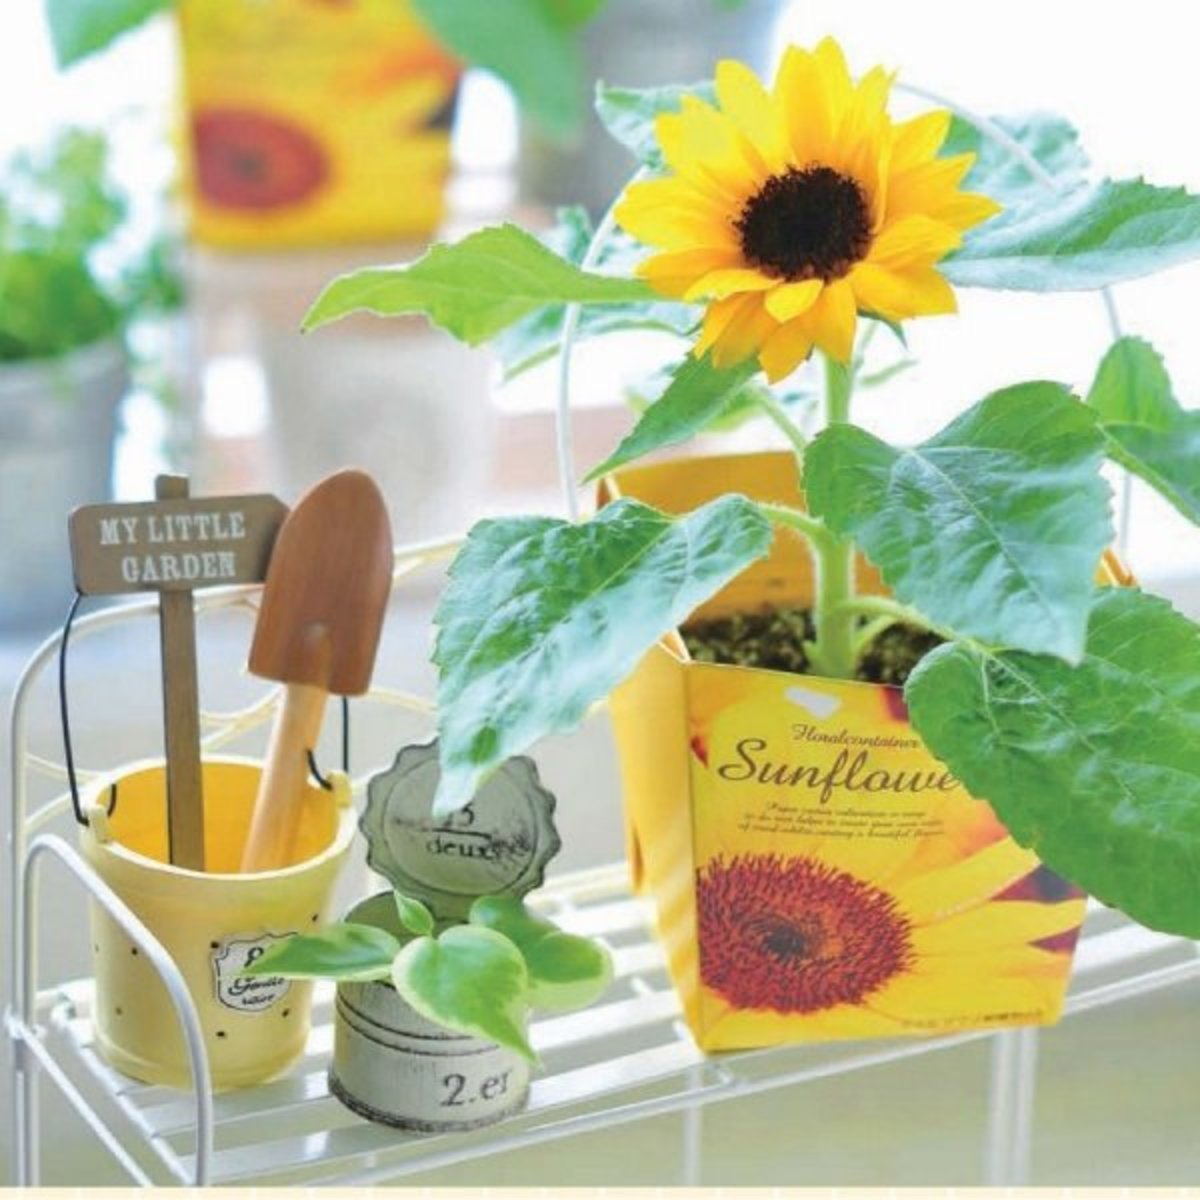 GD-434 Floral Container Smile Sunflower